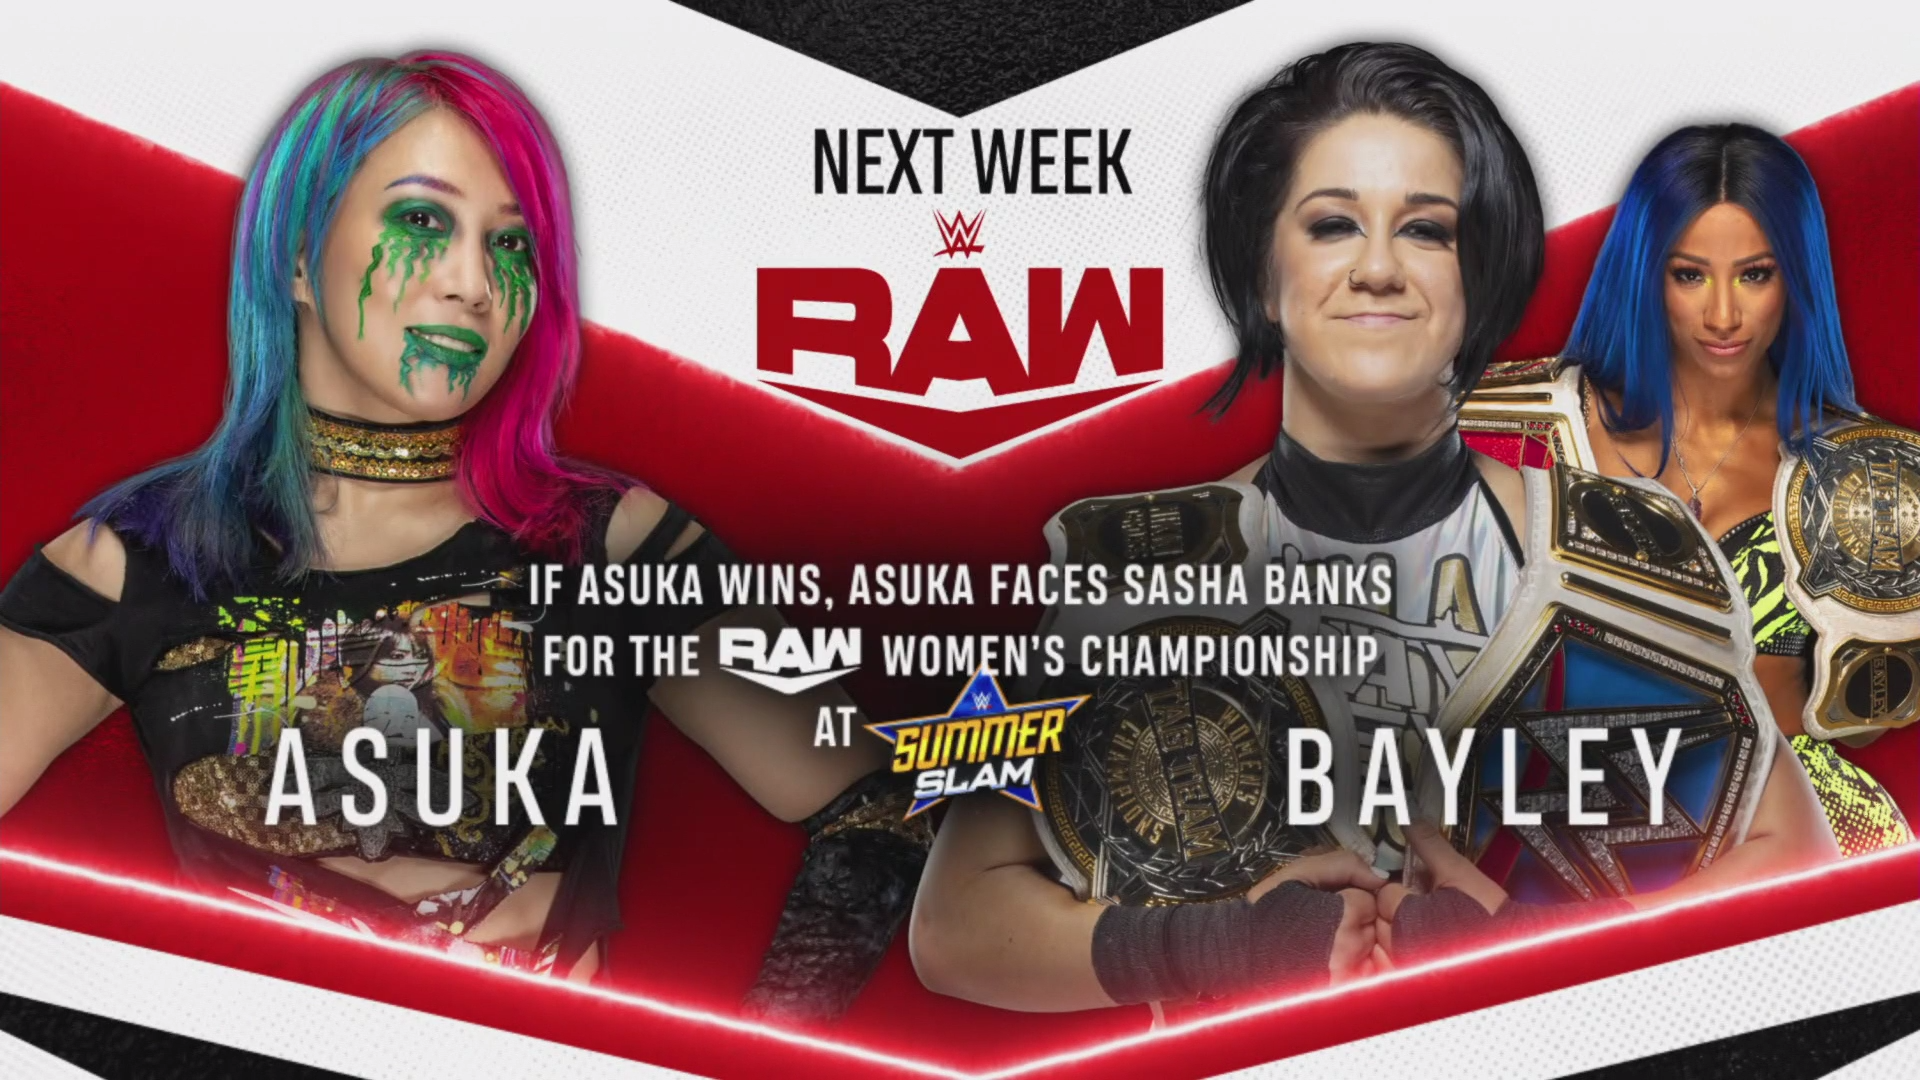 WWE Raw: Randy Orton vs Kevin Owens & Bayley vs Asuka Set For Next Week 2